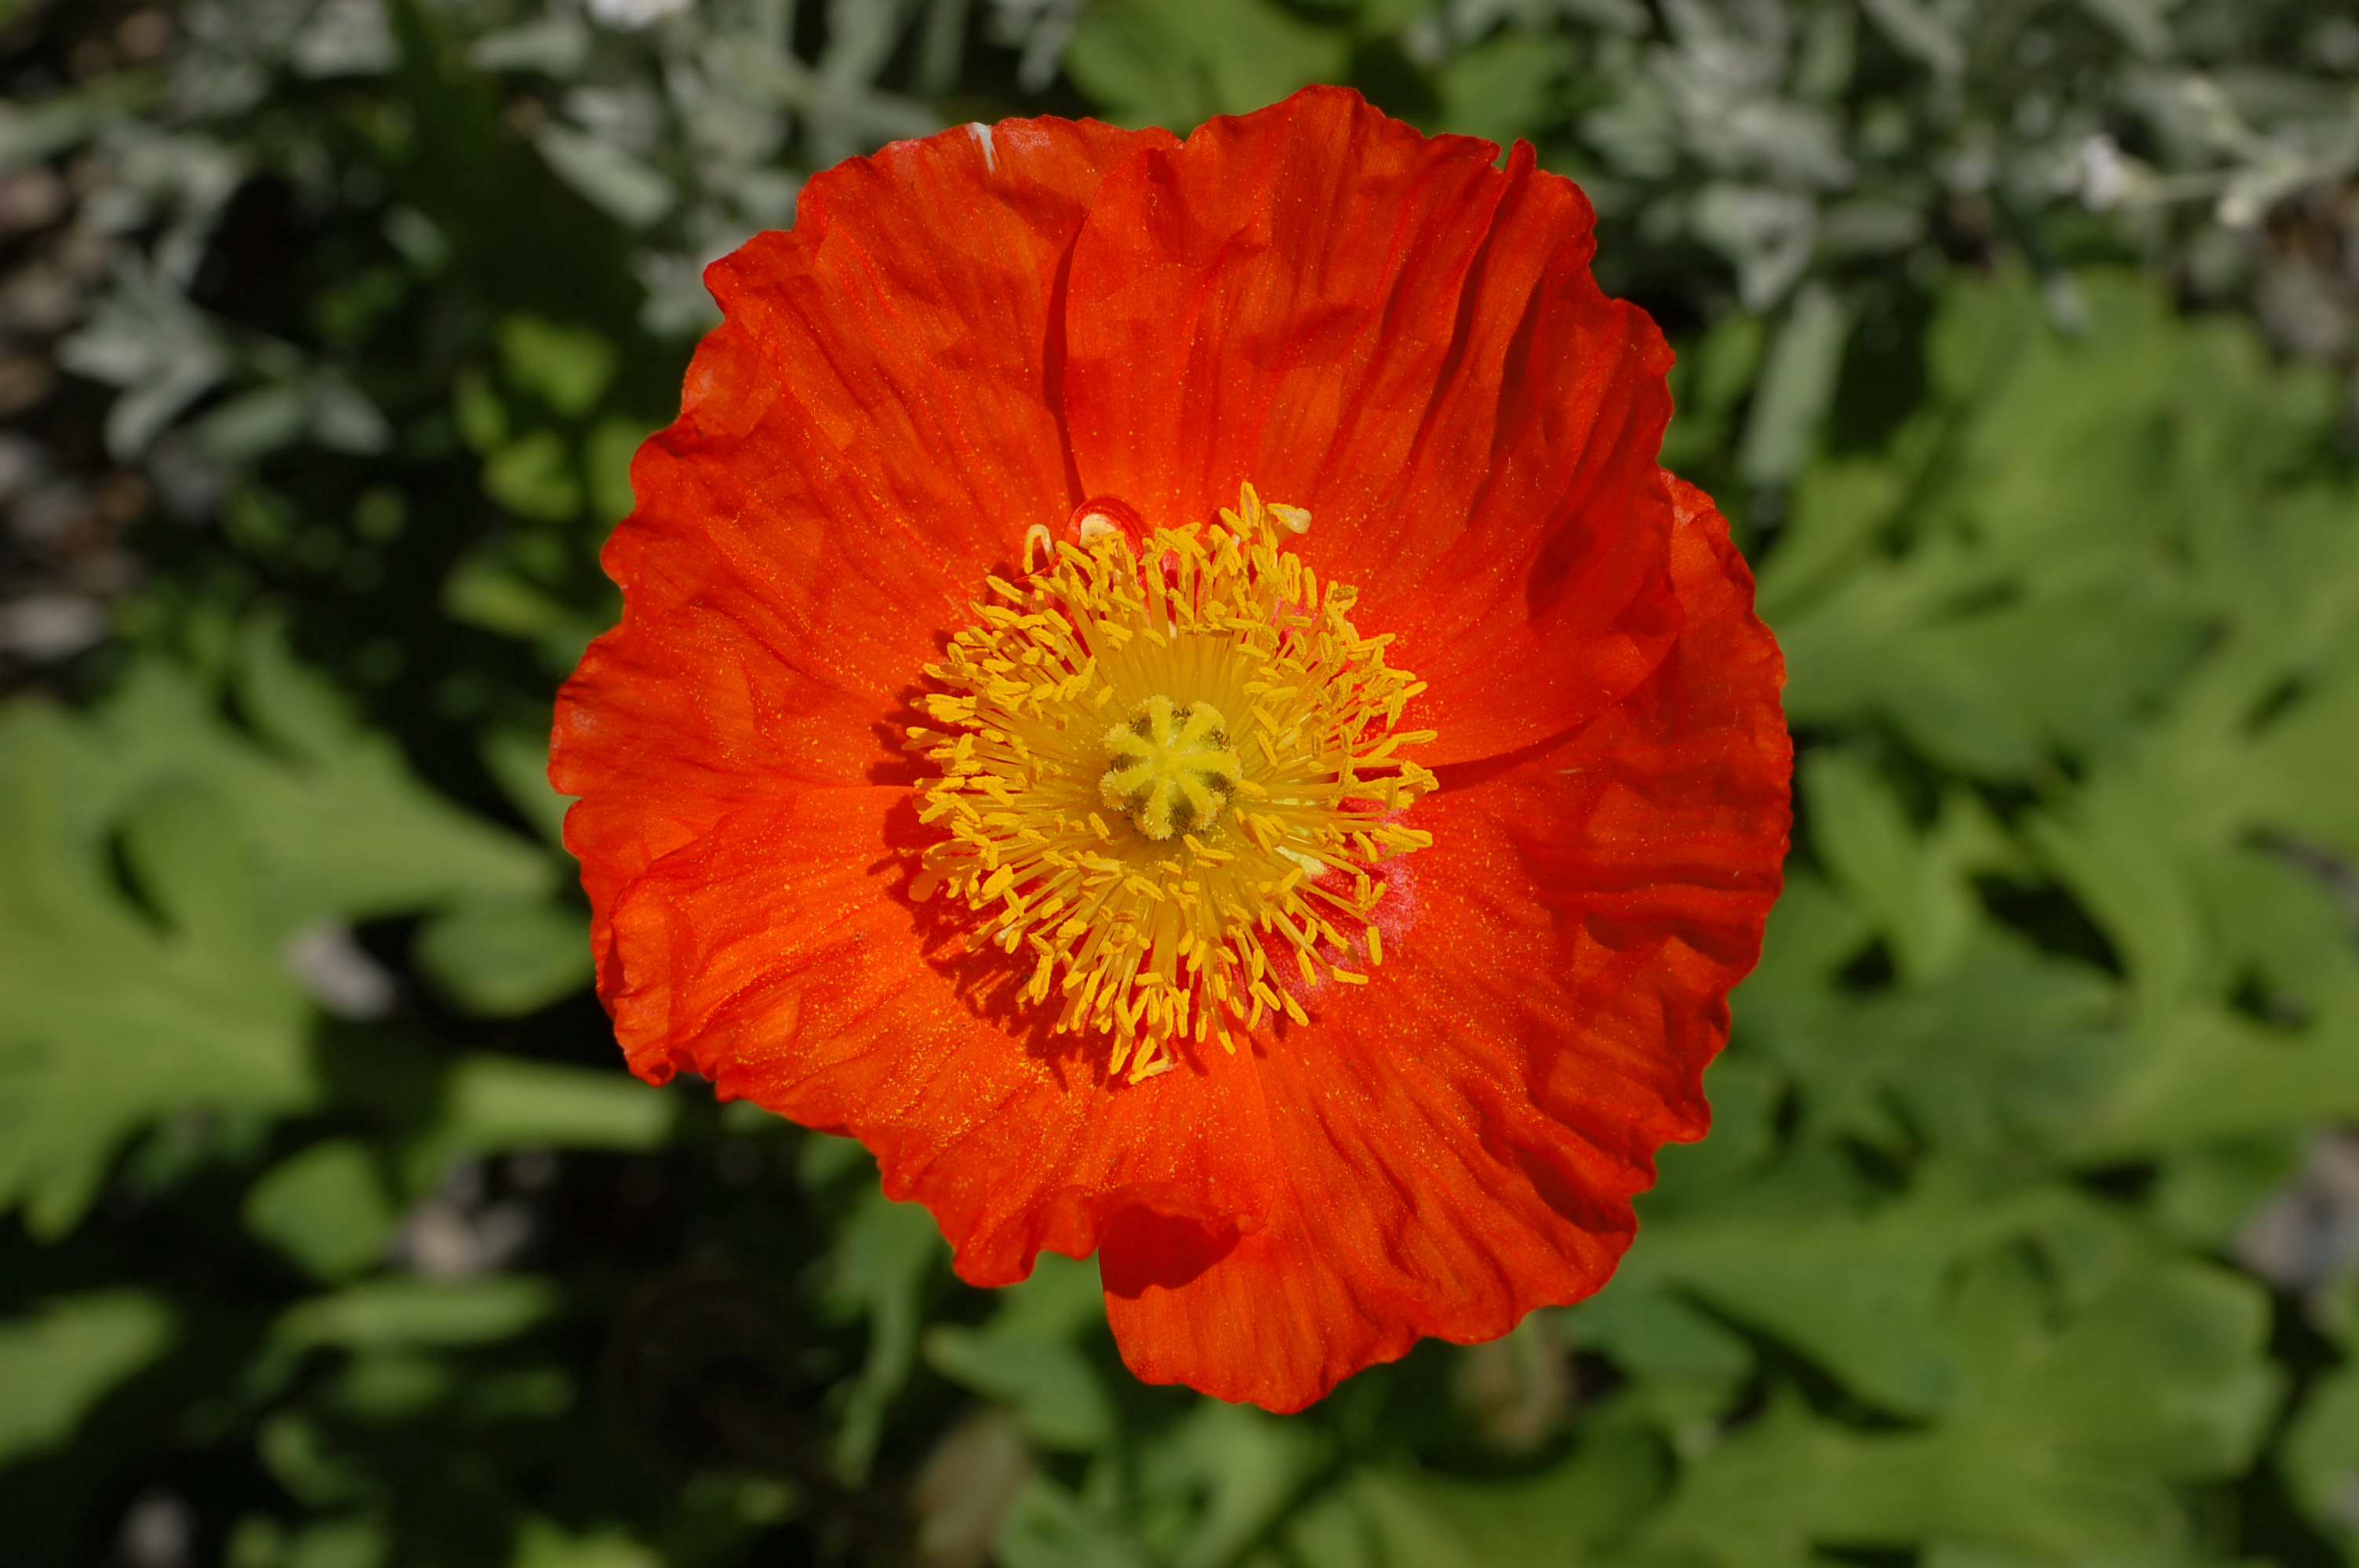 Poppy flower wikipedia image collections flower decoration ideas poppy flower wikipedia gallery flower decoration ideas poppy flower wikipedia gallery flower decoration ideas poppy flower mightylinksfo